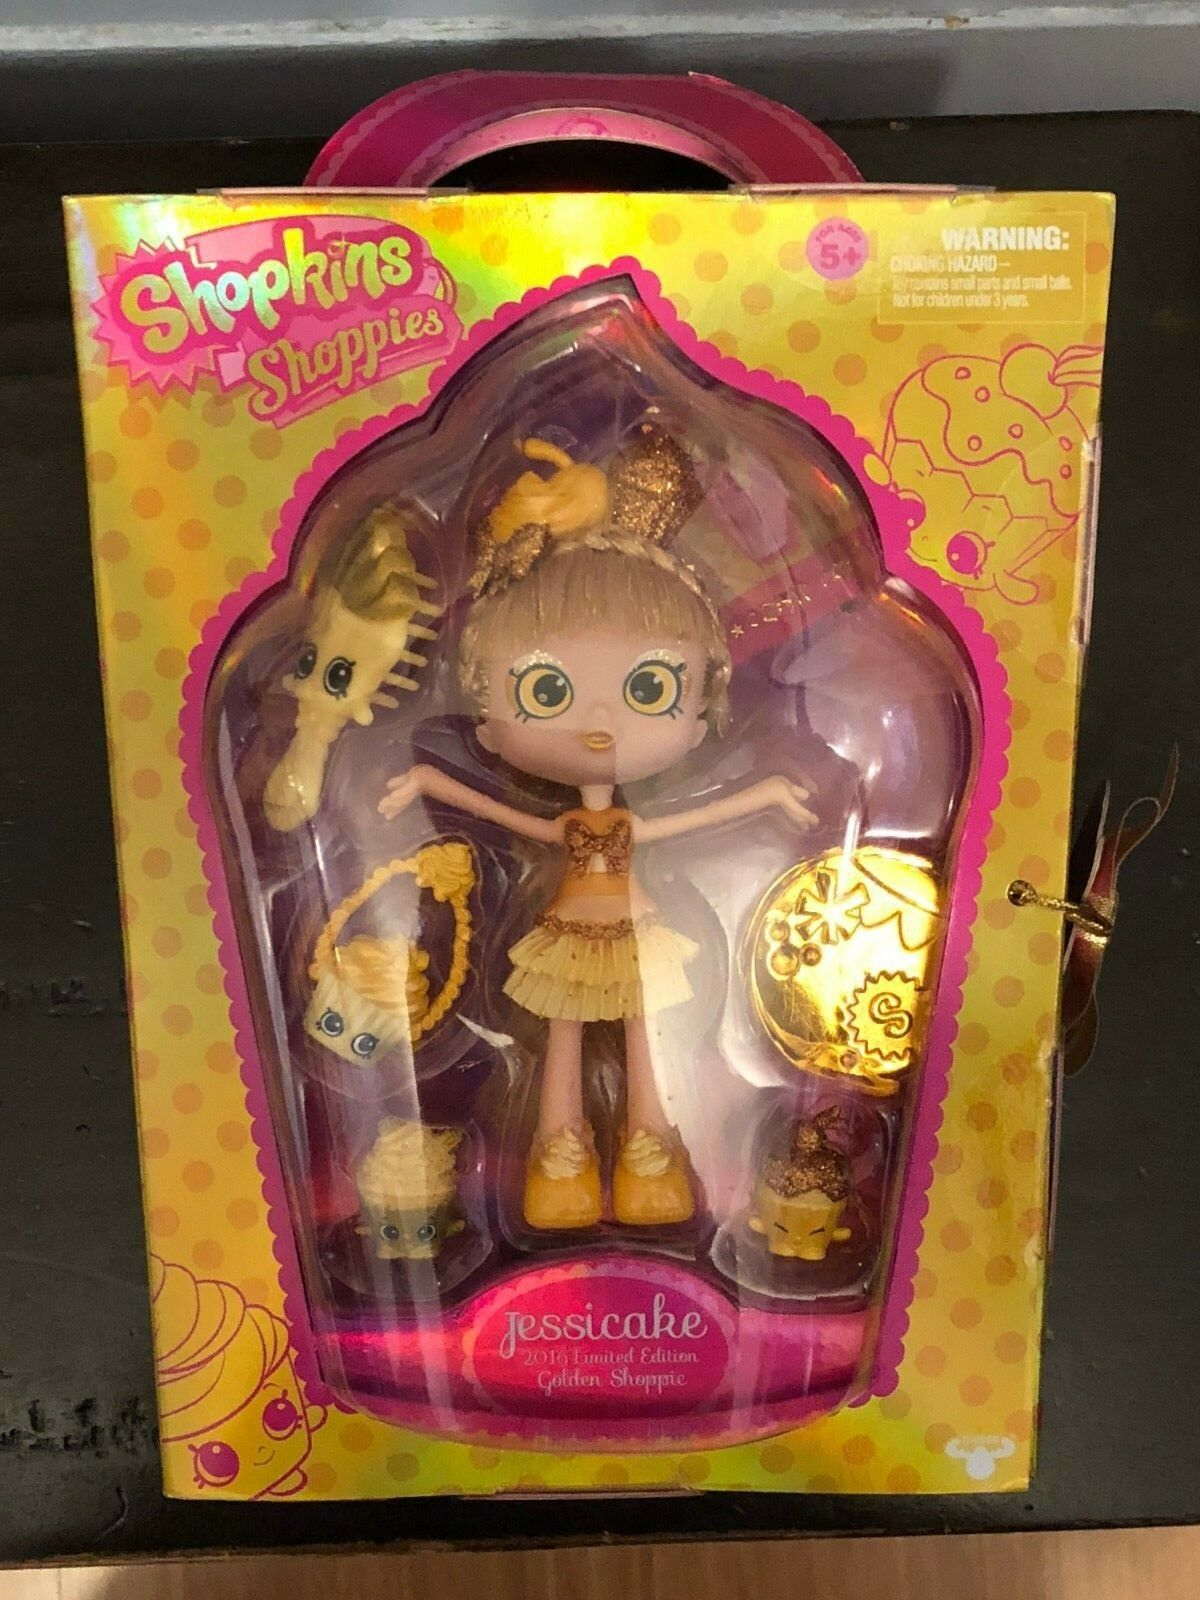 Shopkins SDCC Exclusive golden Jessicake Shoppie Doll Limited Edition NEW